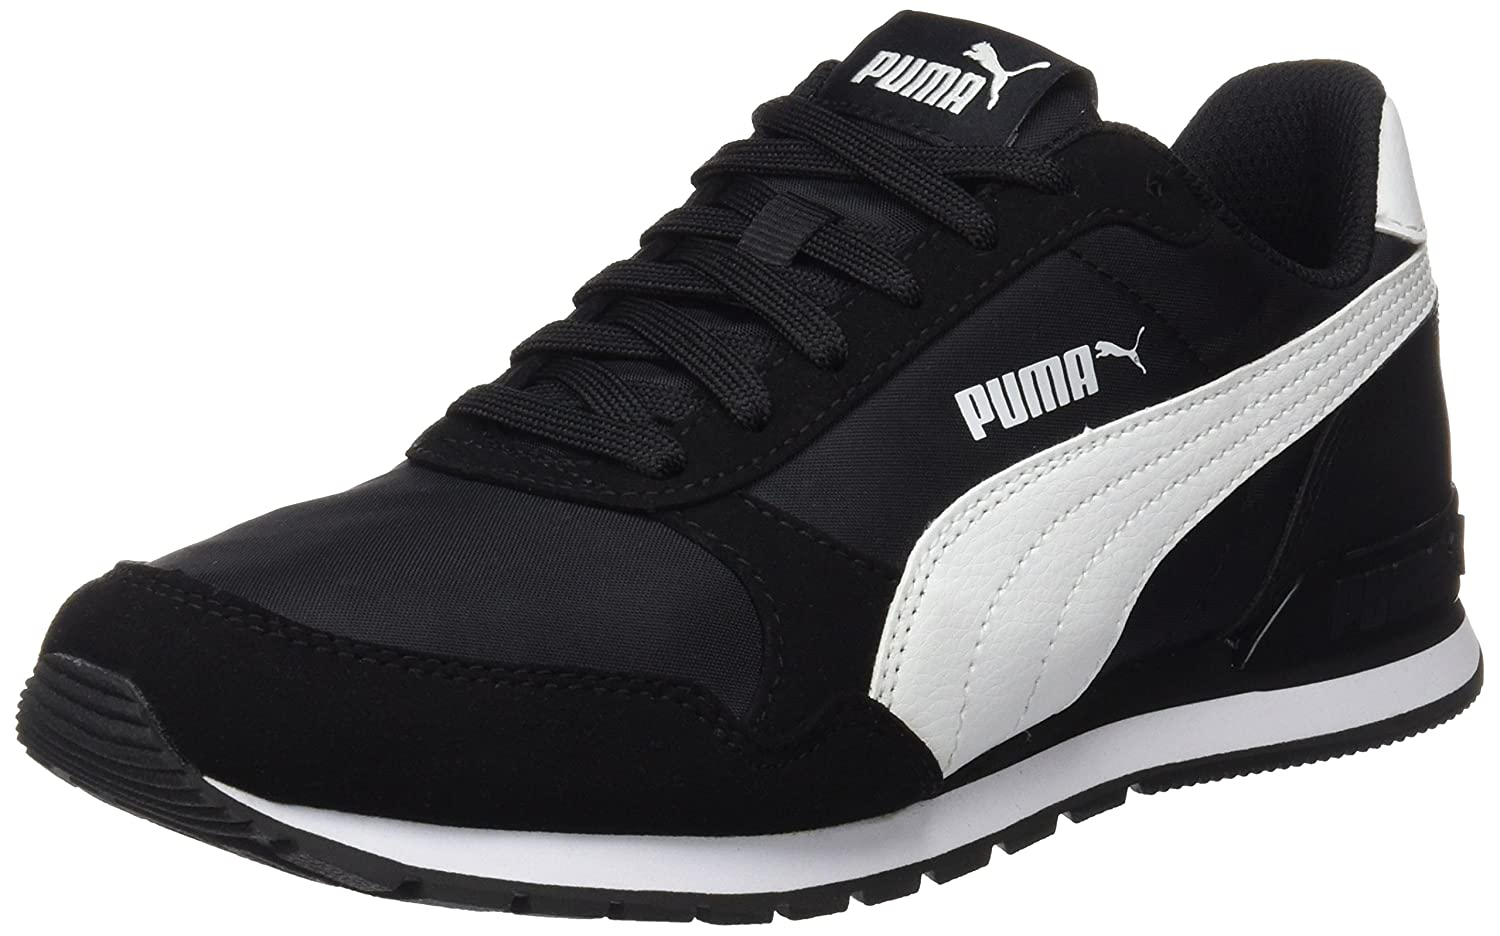 TALLA 44 EU. Puma St Runner V2 NL, Zapatillas de Cross Unisex Adulto